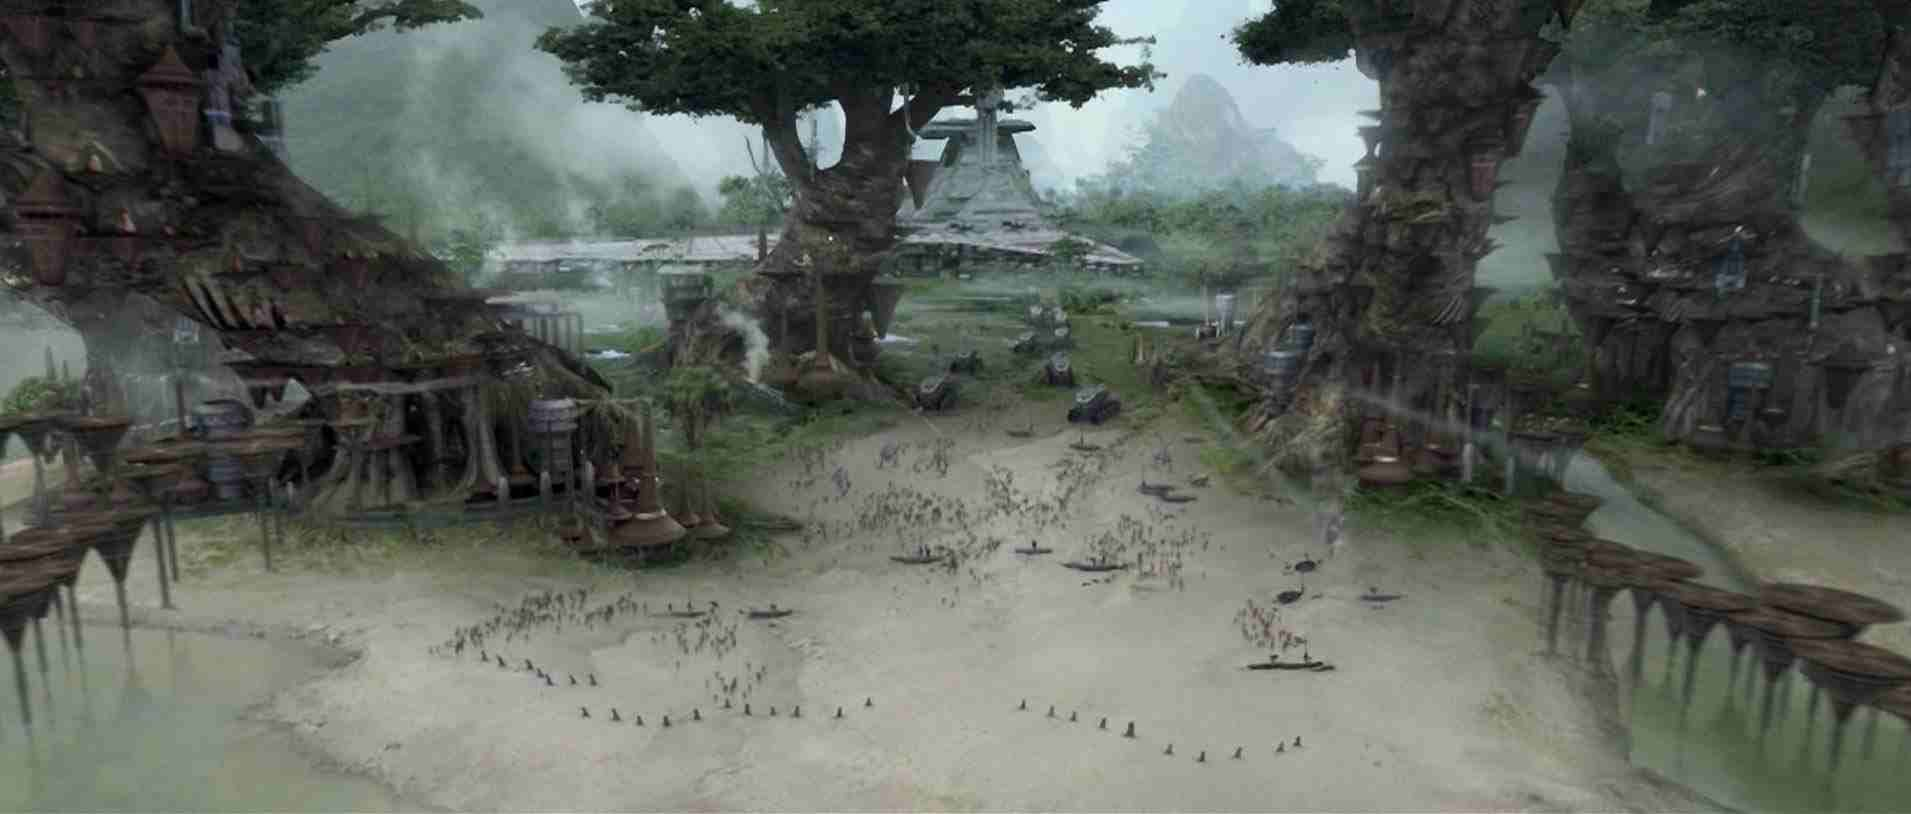 kashyyyk map addon - Men of War: ault Squad - Mod DB on yoda star map, taris star map, dromund kaas star map, star wars star map, kamino star map,